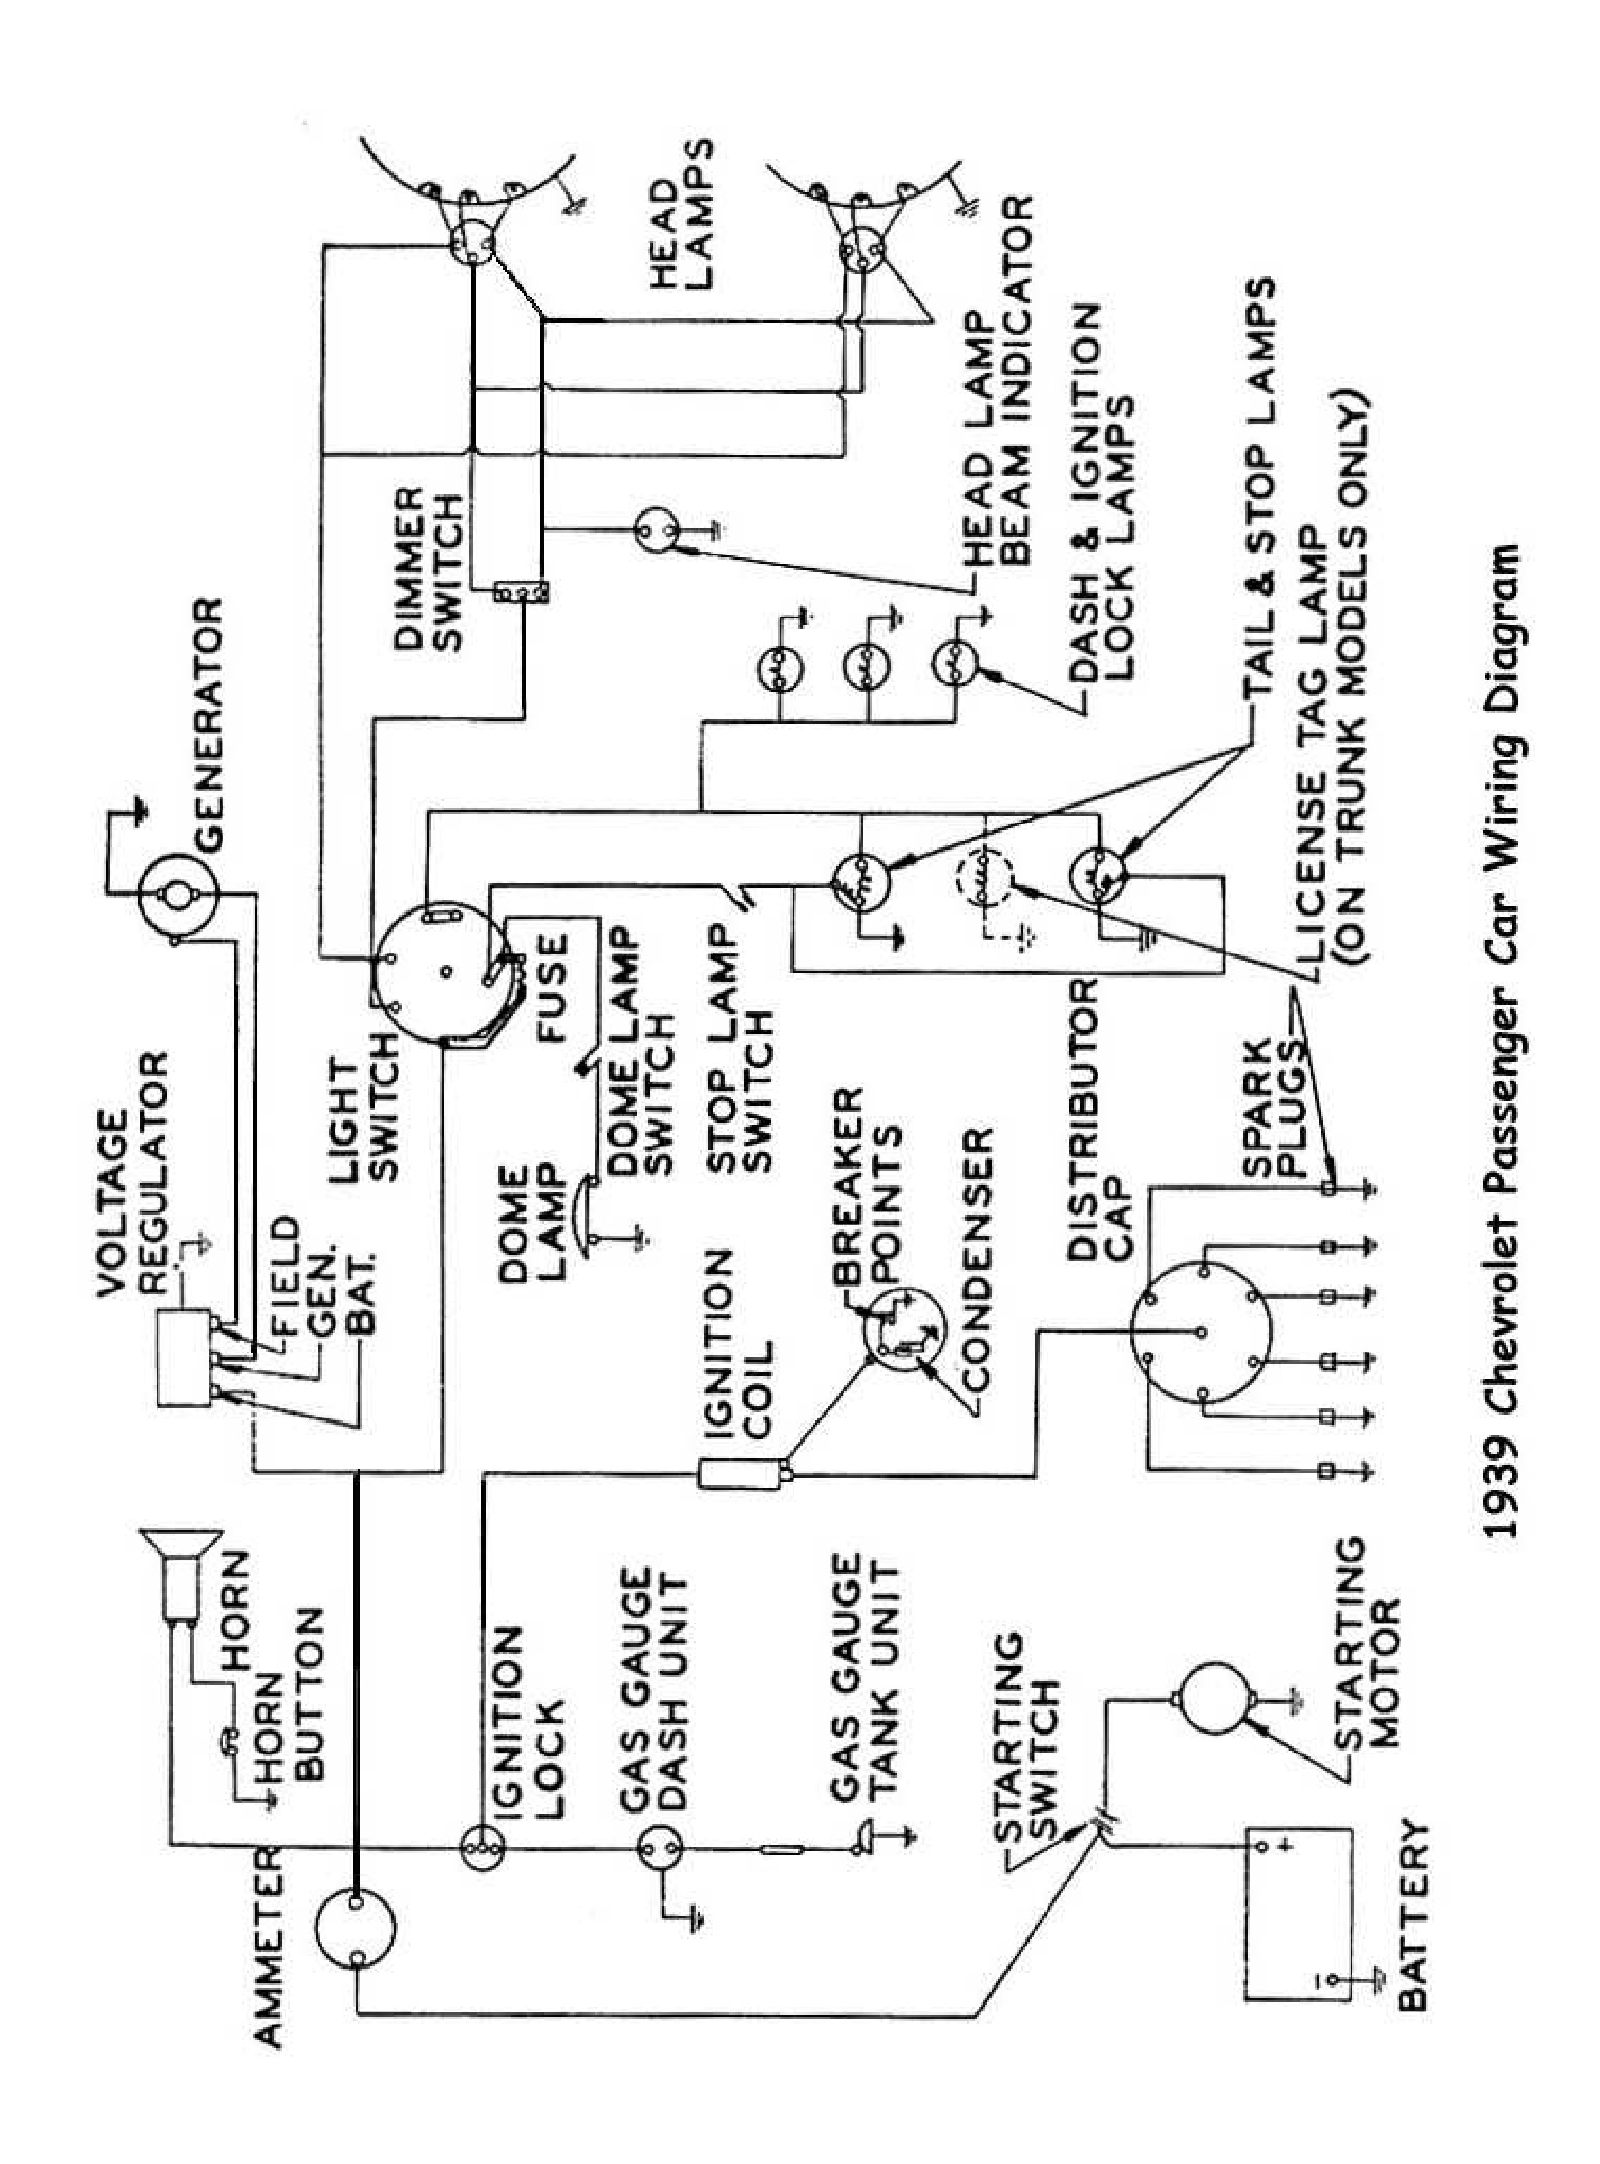 39car chevy wiring diagrams wiring schematics for cars at mifinder.co